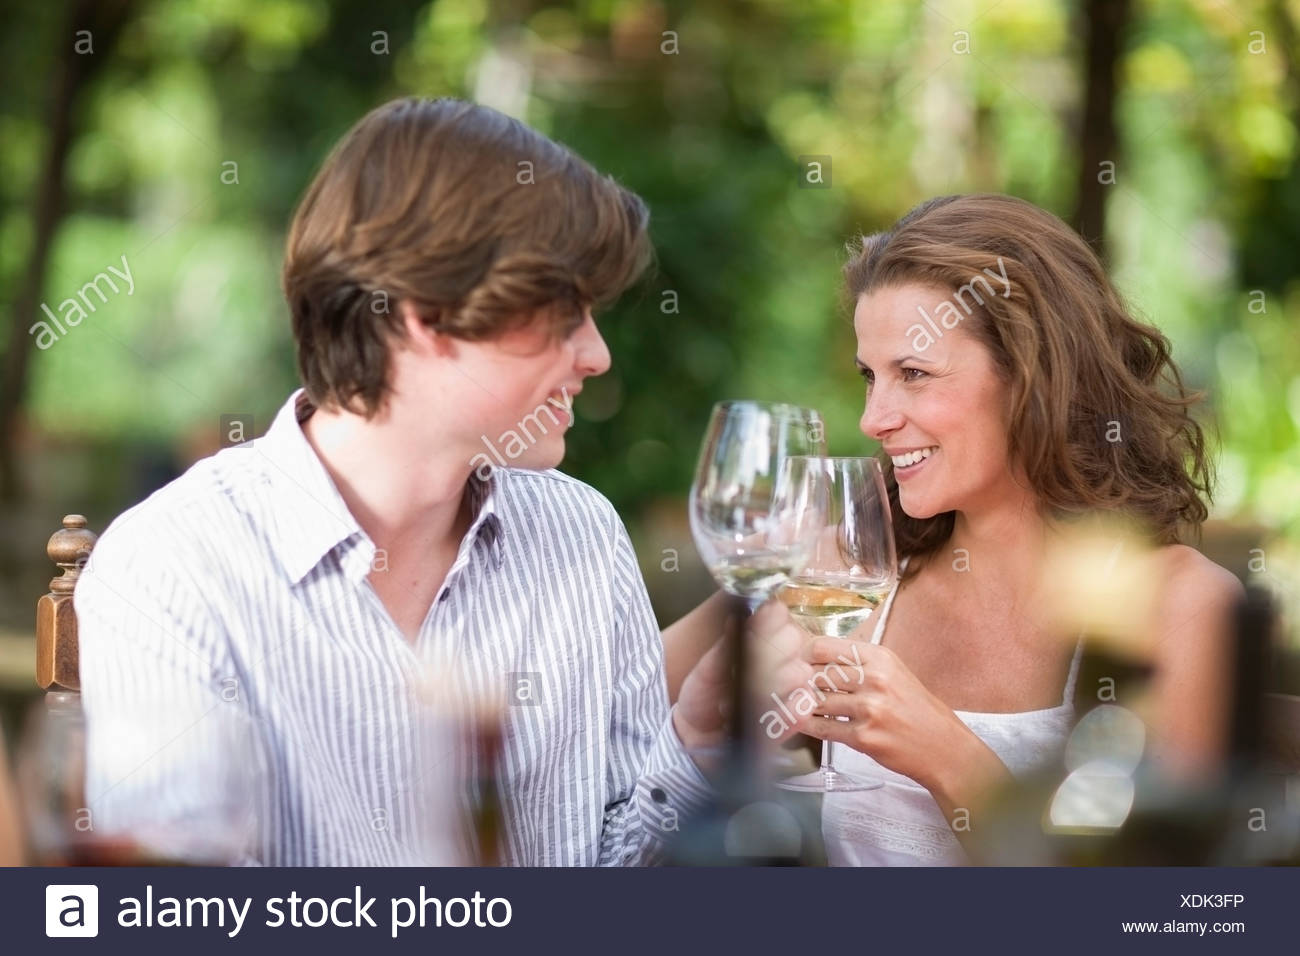 Woman and boy clinking  glasses - Stock Image